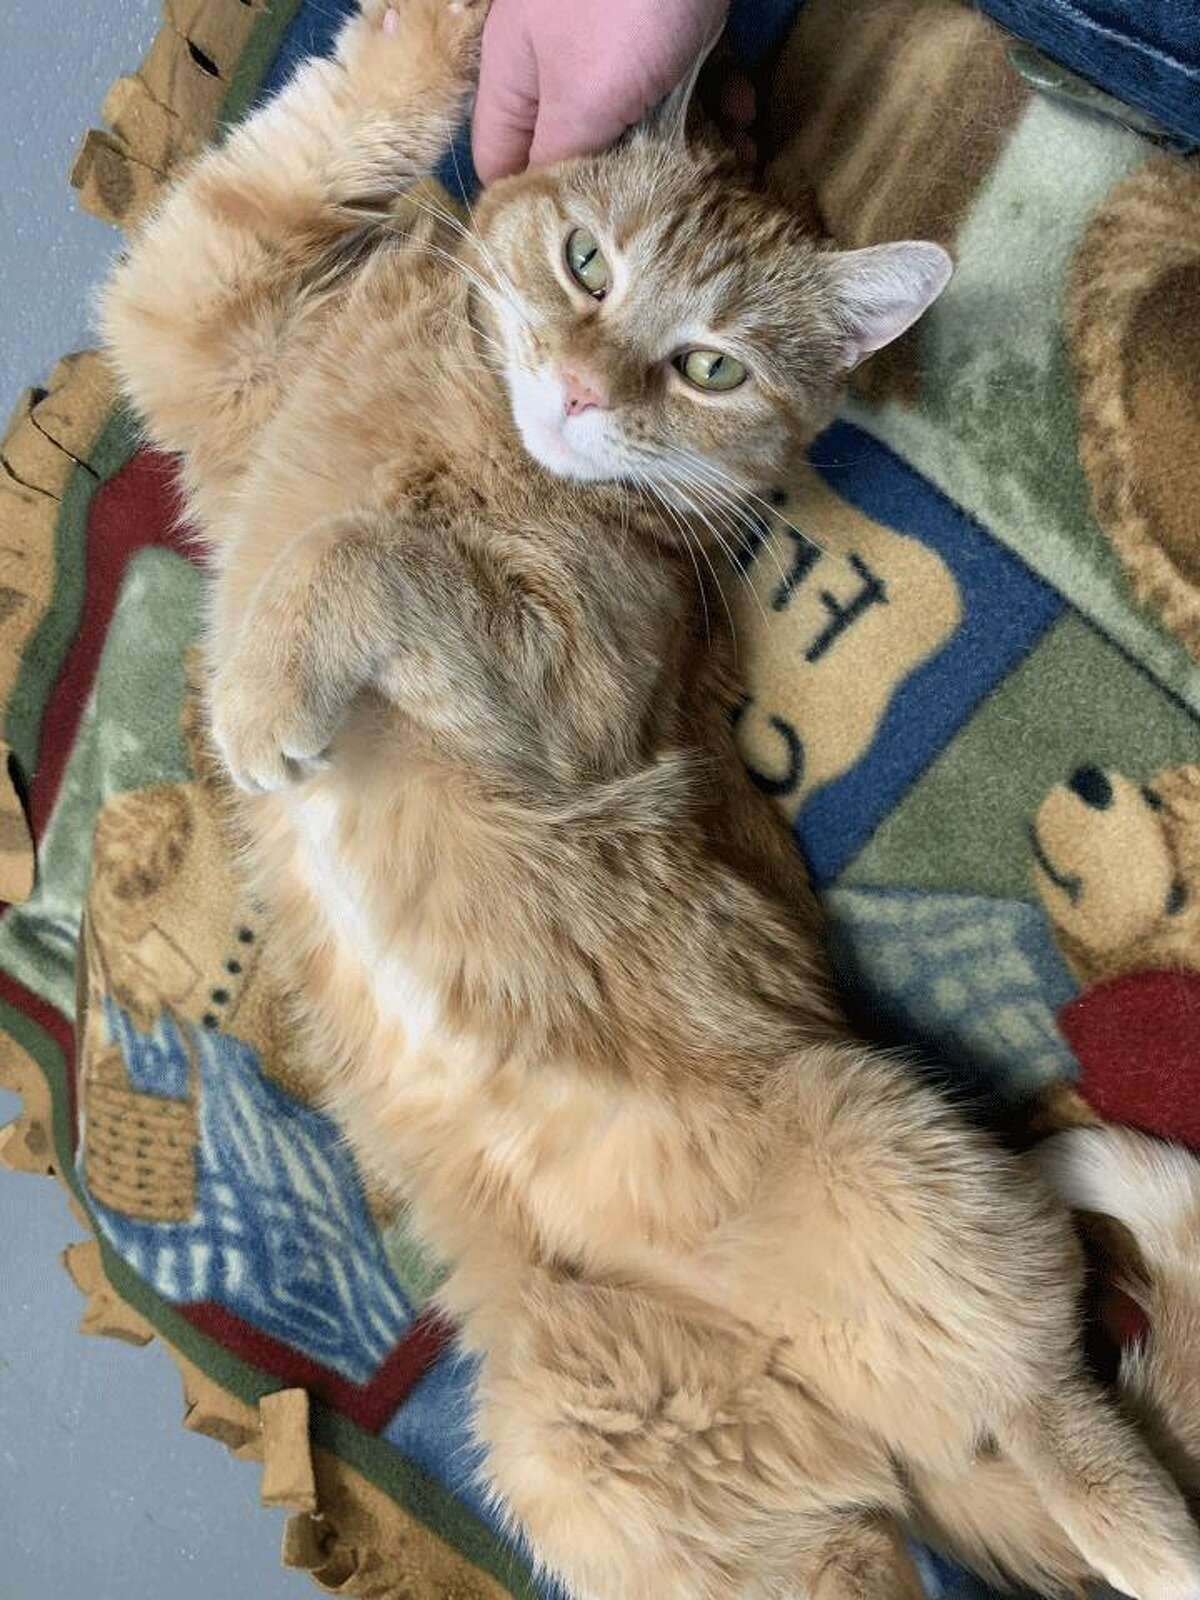 Mini, a tabby cat, needs a quiet home. She is available to be met by calling the ROAR Donofrio Family Animal Shelter, located at 45 South Street, in Ridgefield, at 203-438-0158, for an appointment.